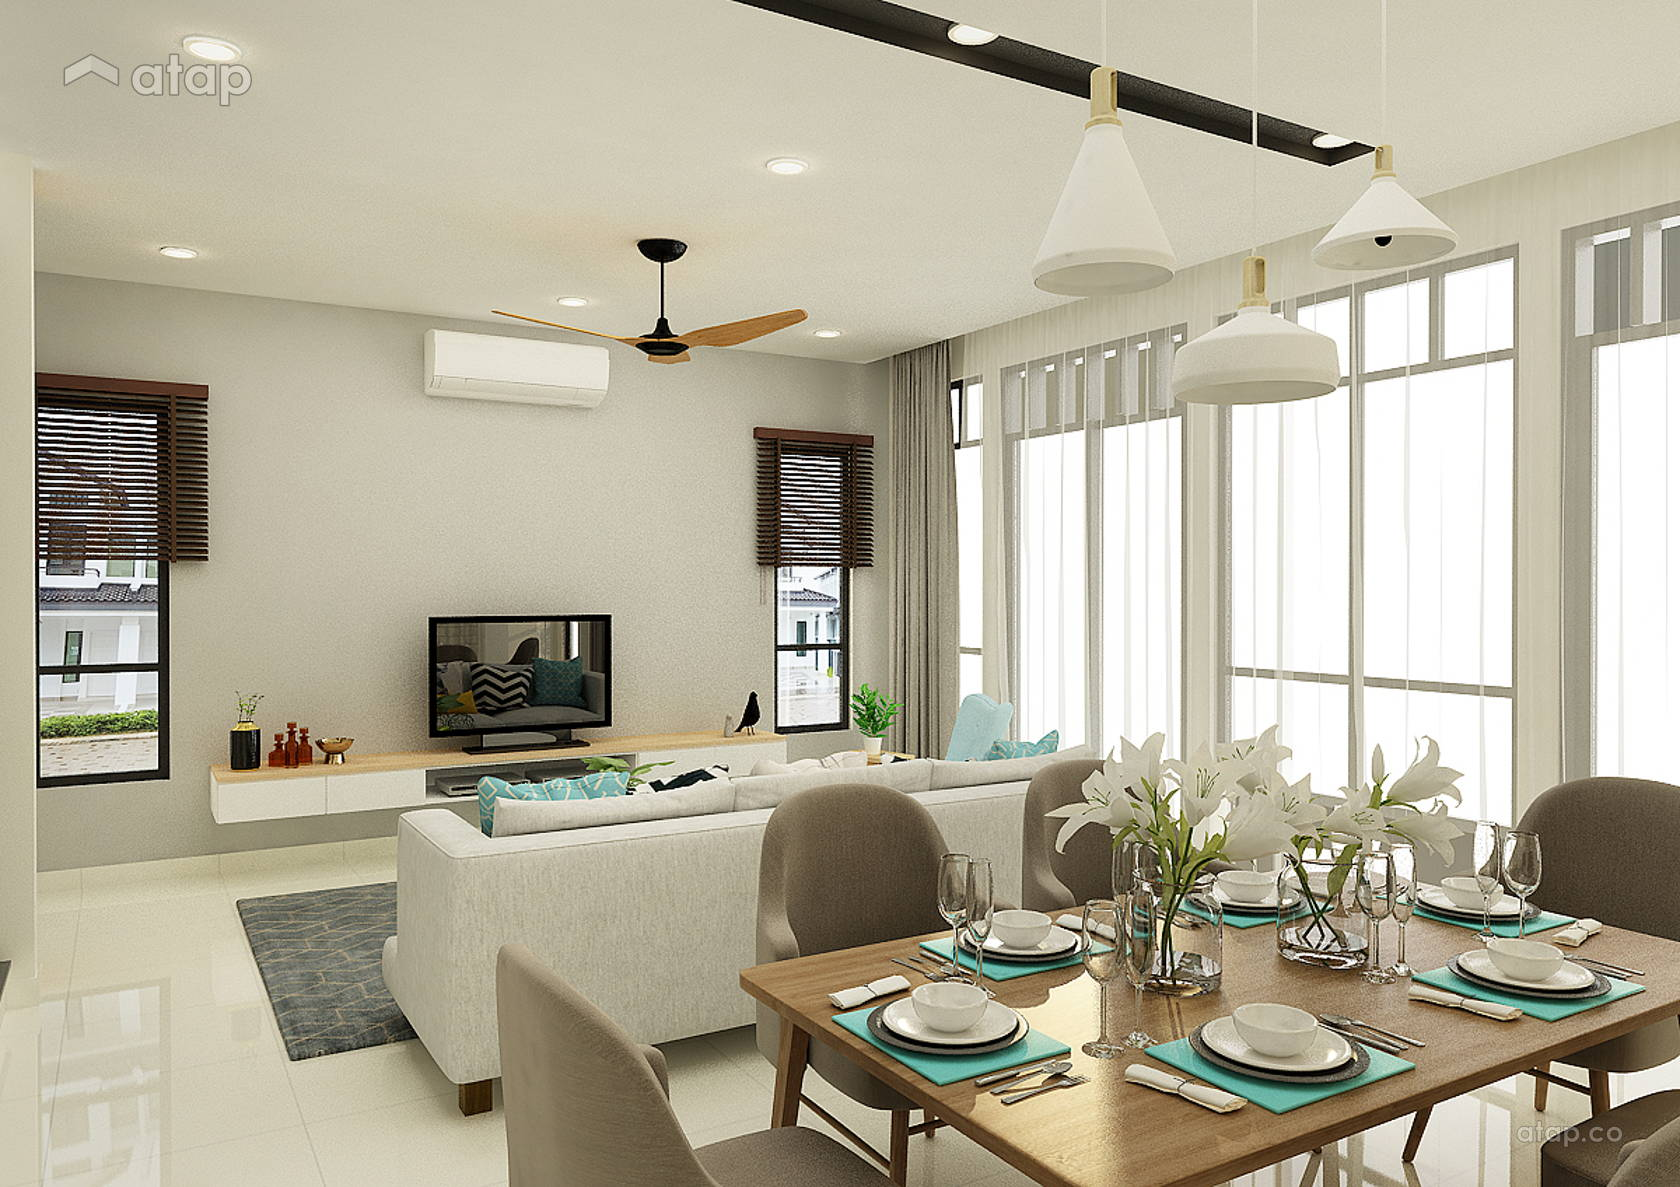 eco majestic 2 2 Importance Of Lighting In Interior Designing